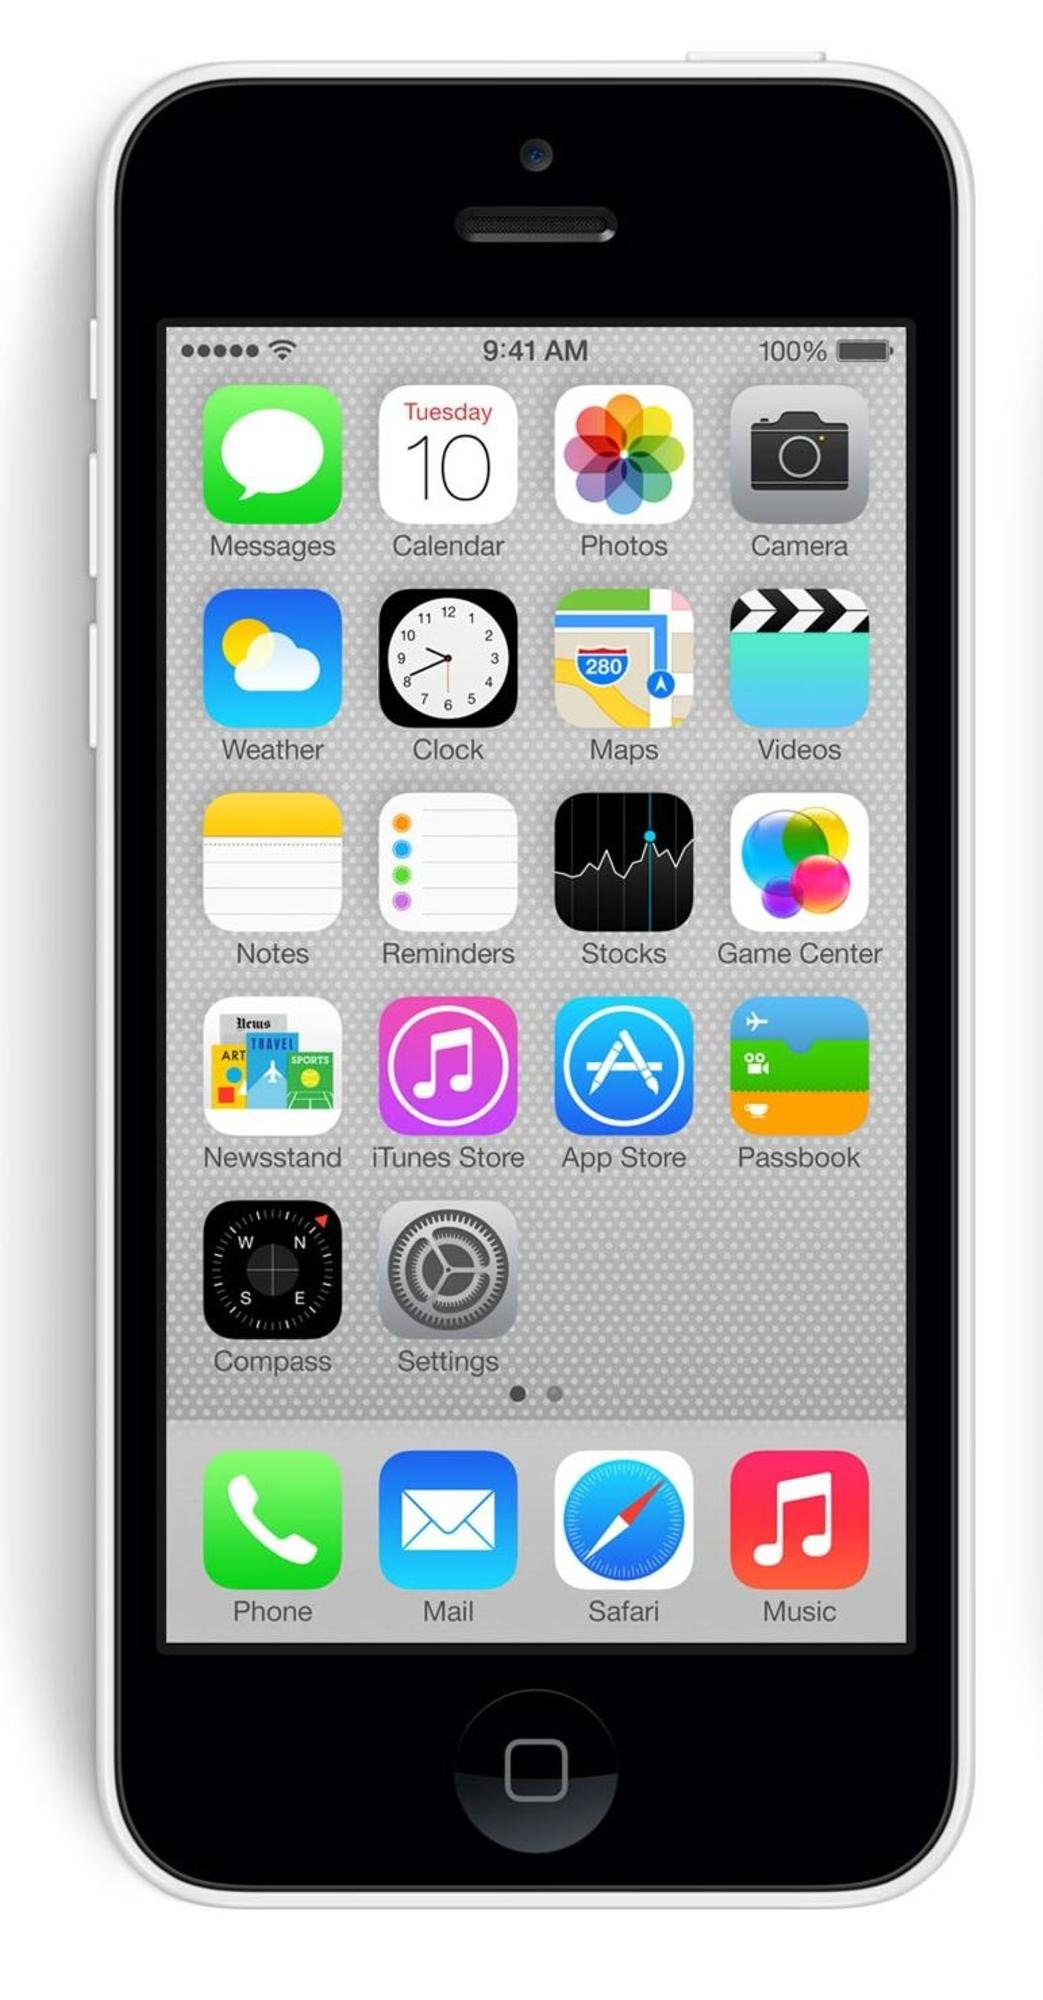 Apple iPhone 5C 16GB Unlocked Smartphone, GSM Only (at&T/T-Mobile), White (Certified Refurbished)